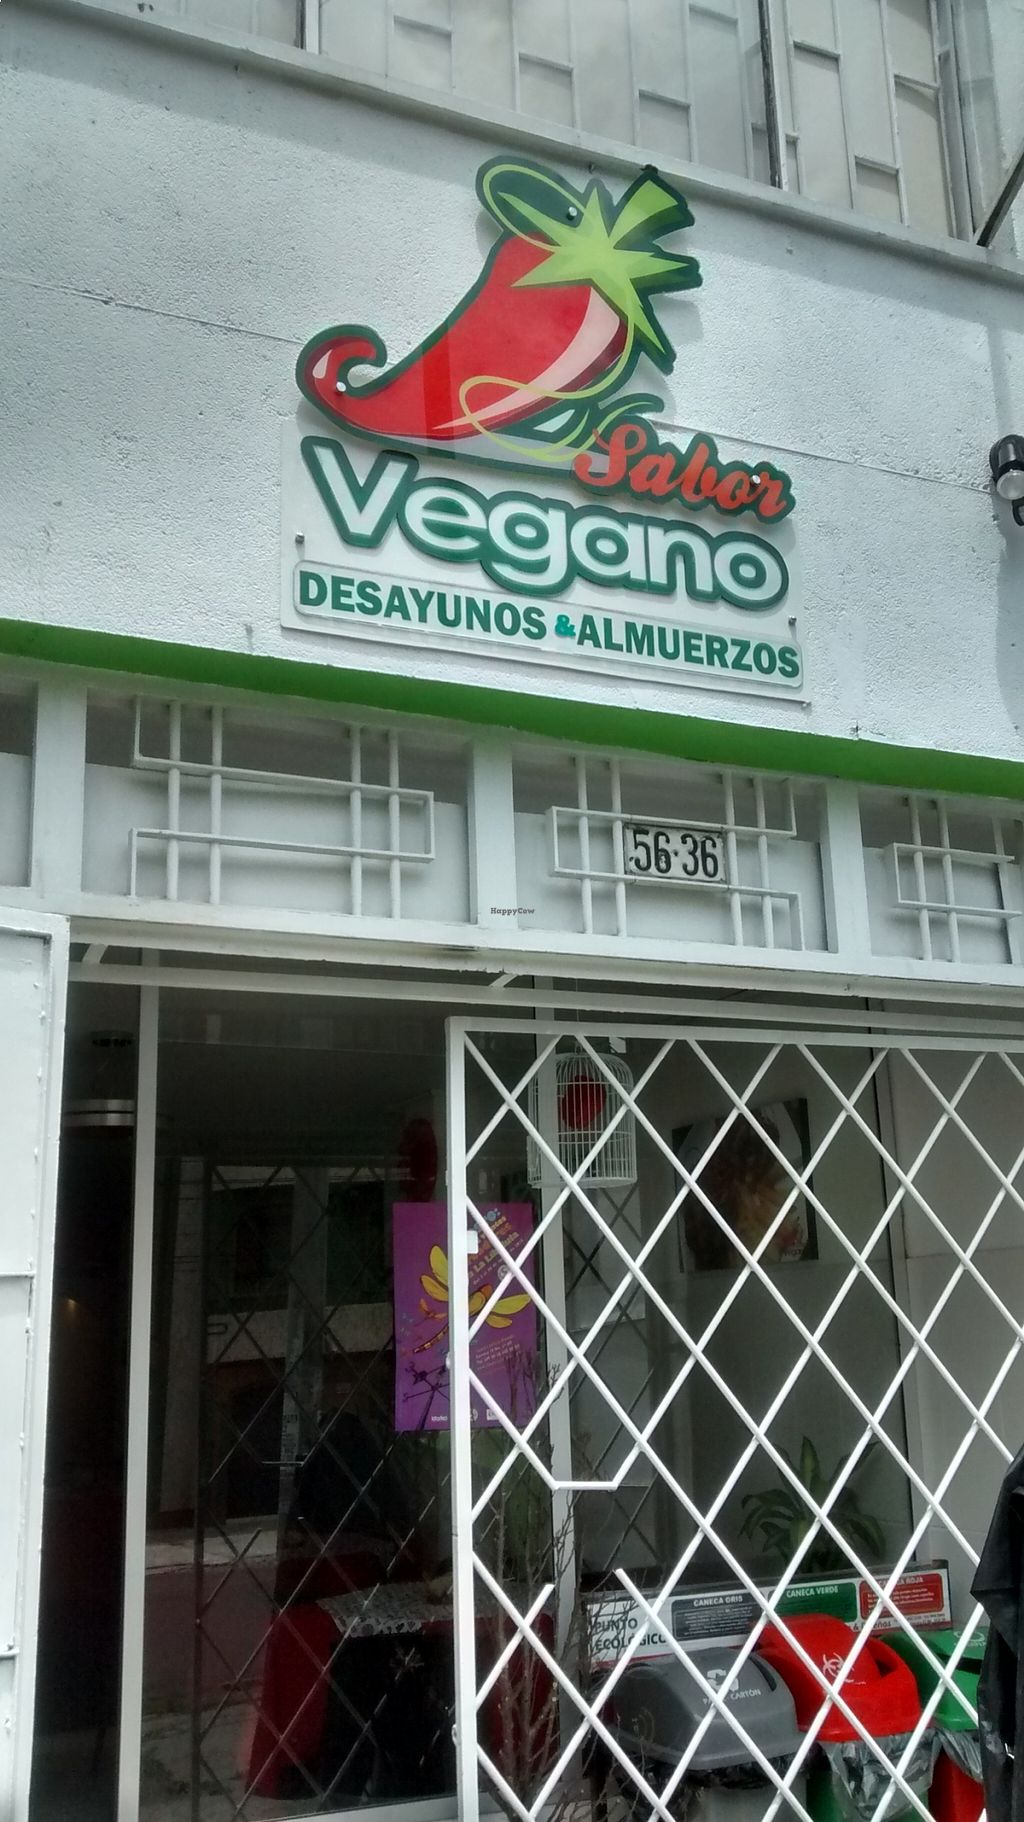 """Photo of Sabor Vegano  by <a href=""""/members/profile/AngieQuijanoVeggie"""">AngieQuijanoVeggie</a> <br/>The place! <br/> August 21, 2015  - <a href='/contact/abuse/image/62130/114604'>Report</a>"""